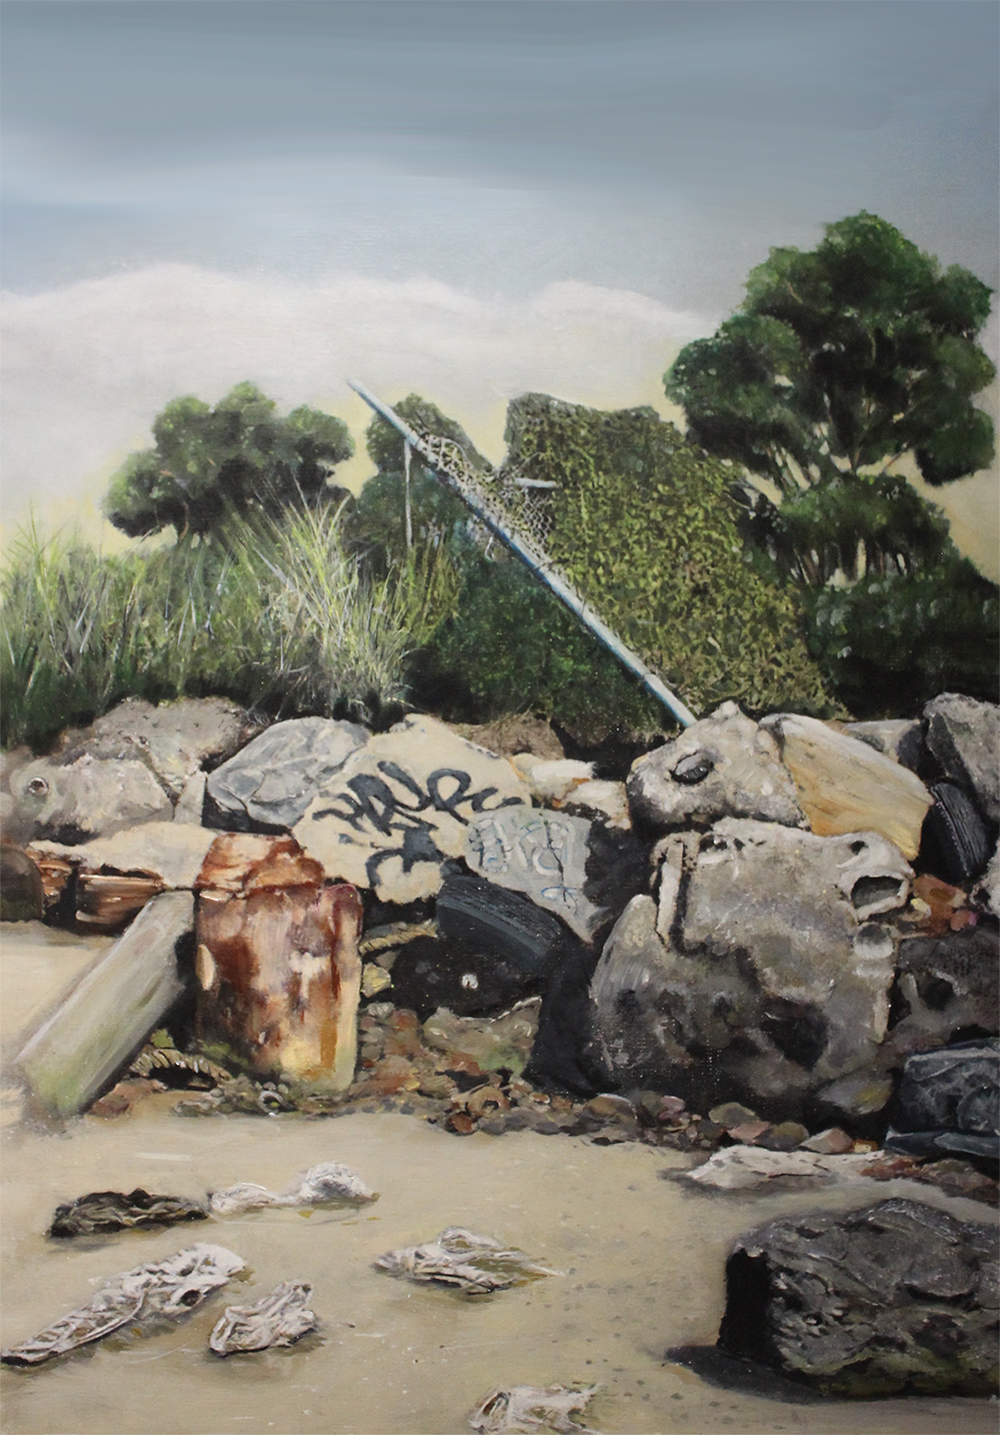 The Beach of Detritus   2016, oil on linen on board  59 x 84 cm